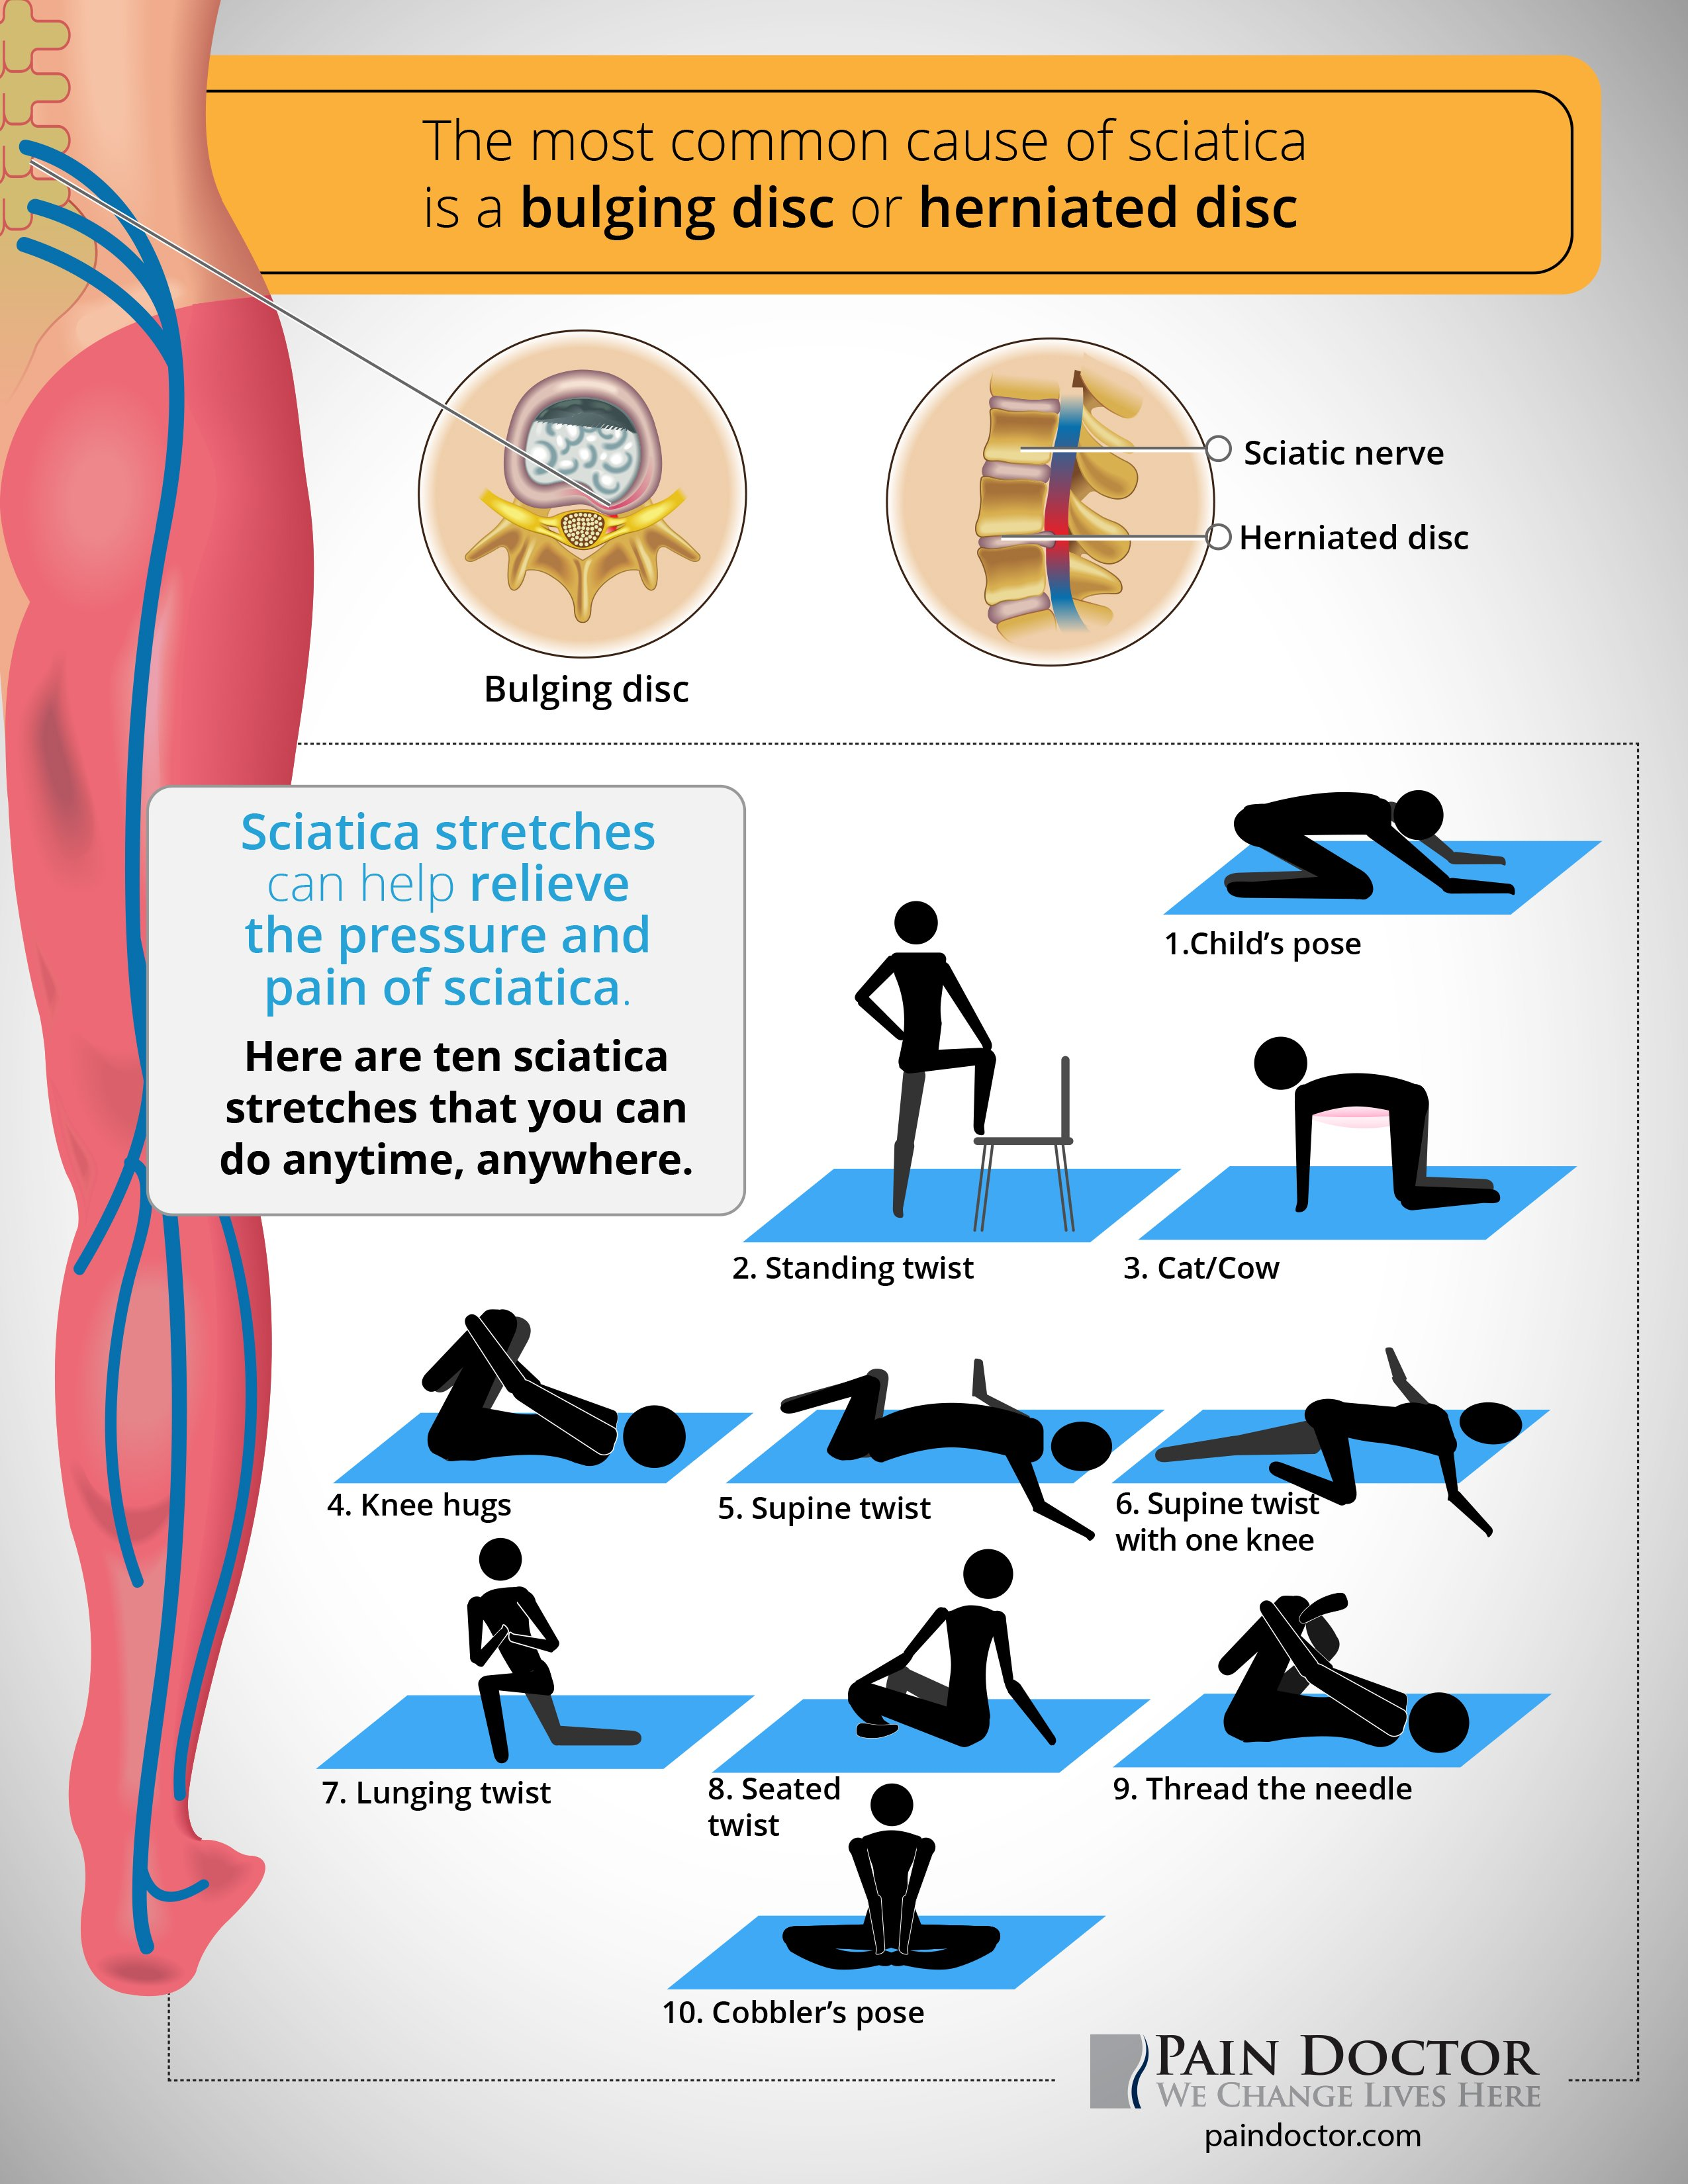 Sciatica stretches can help relieve the pressure and pain